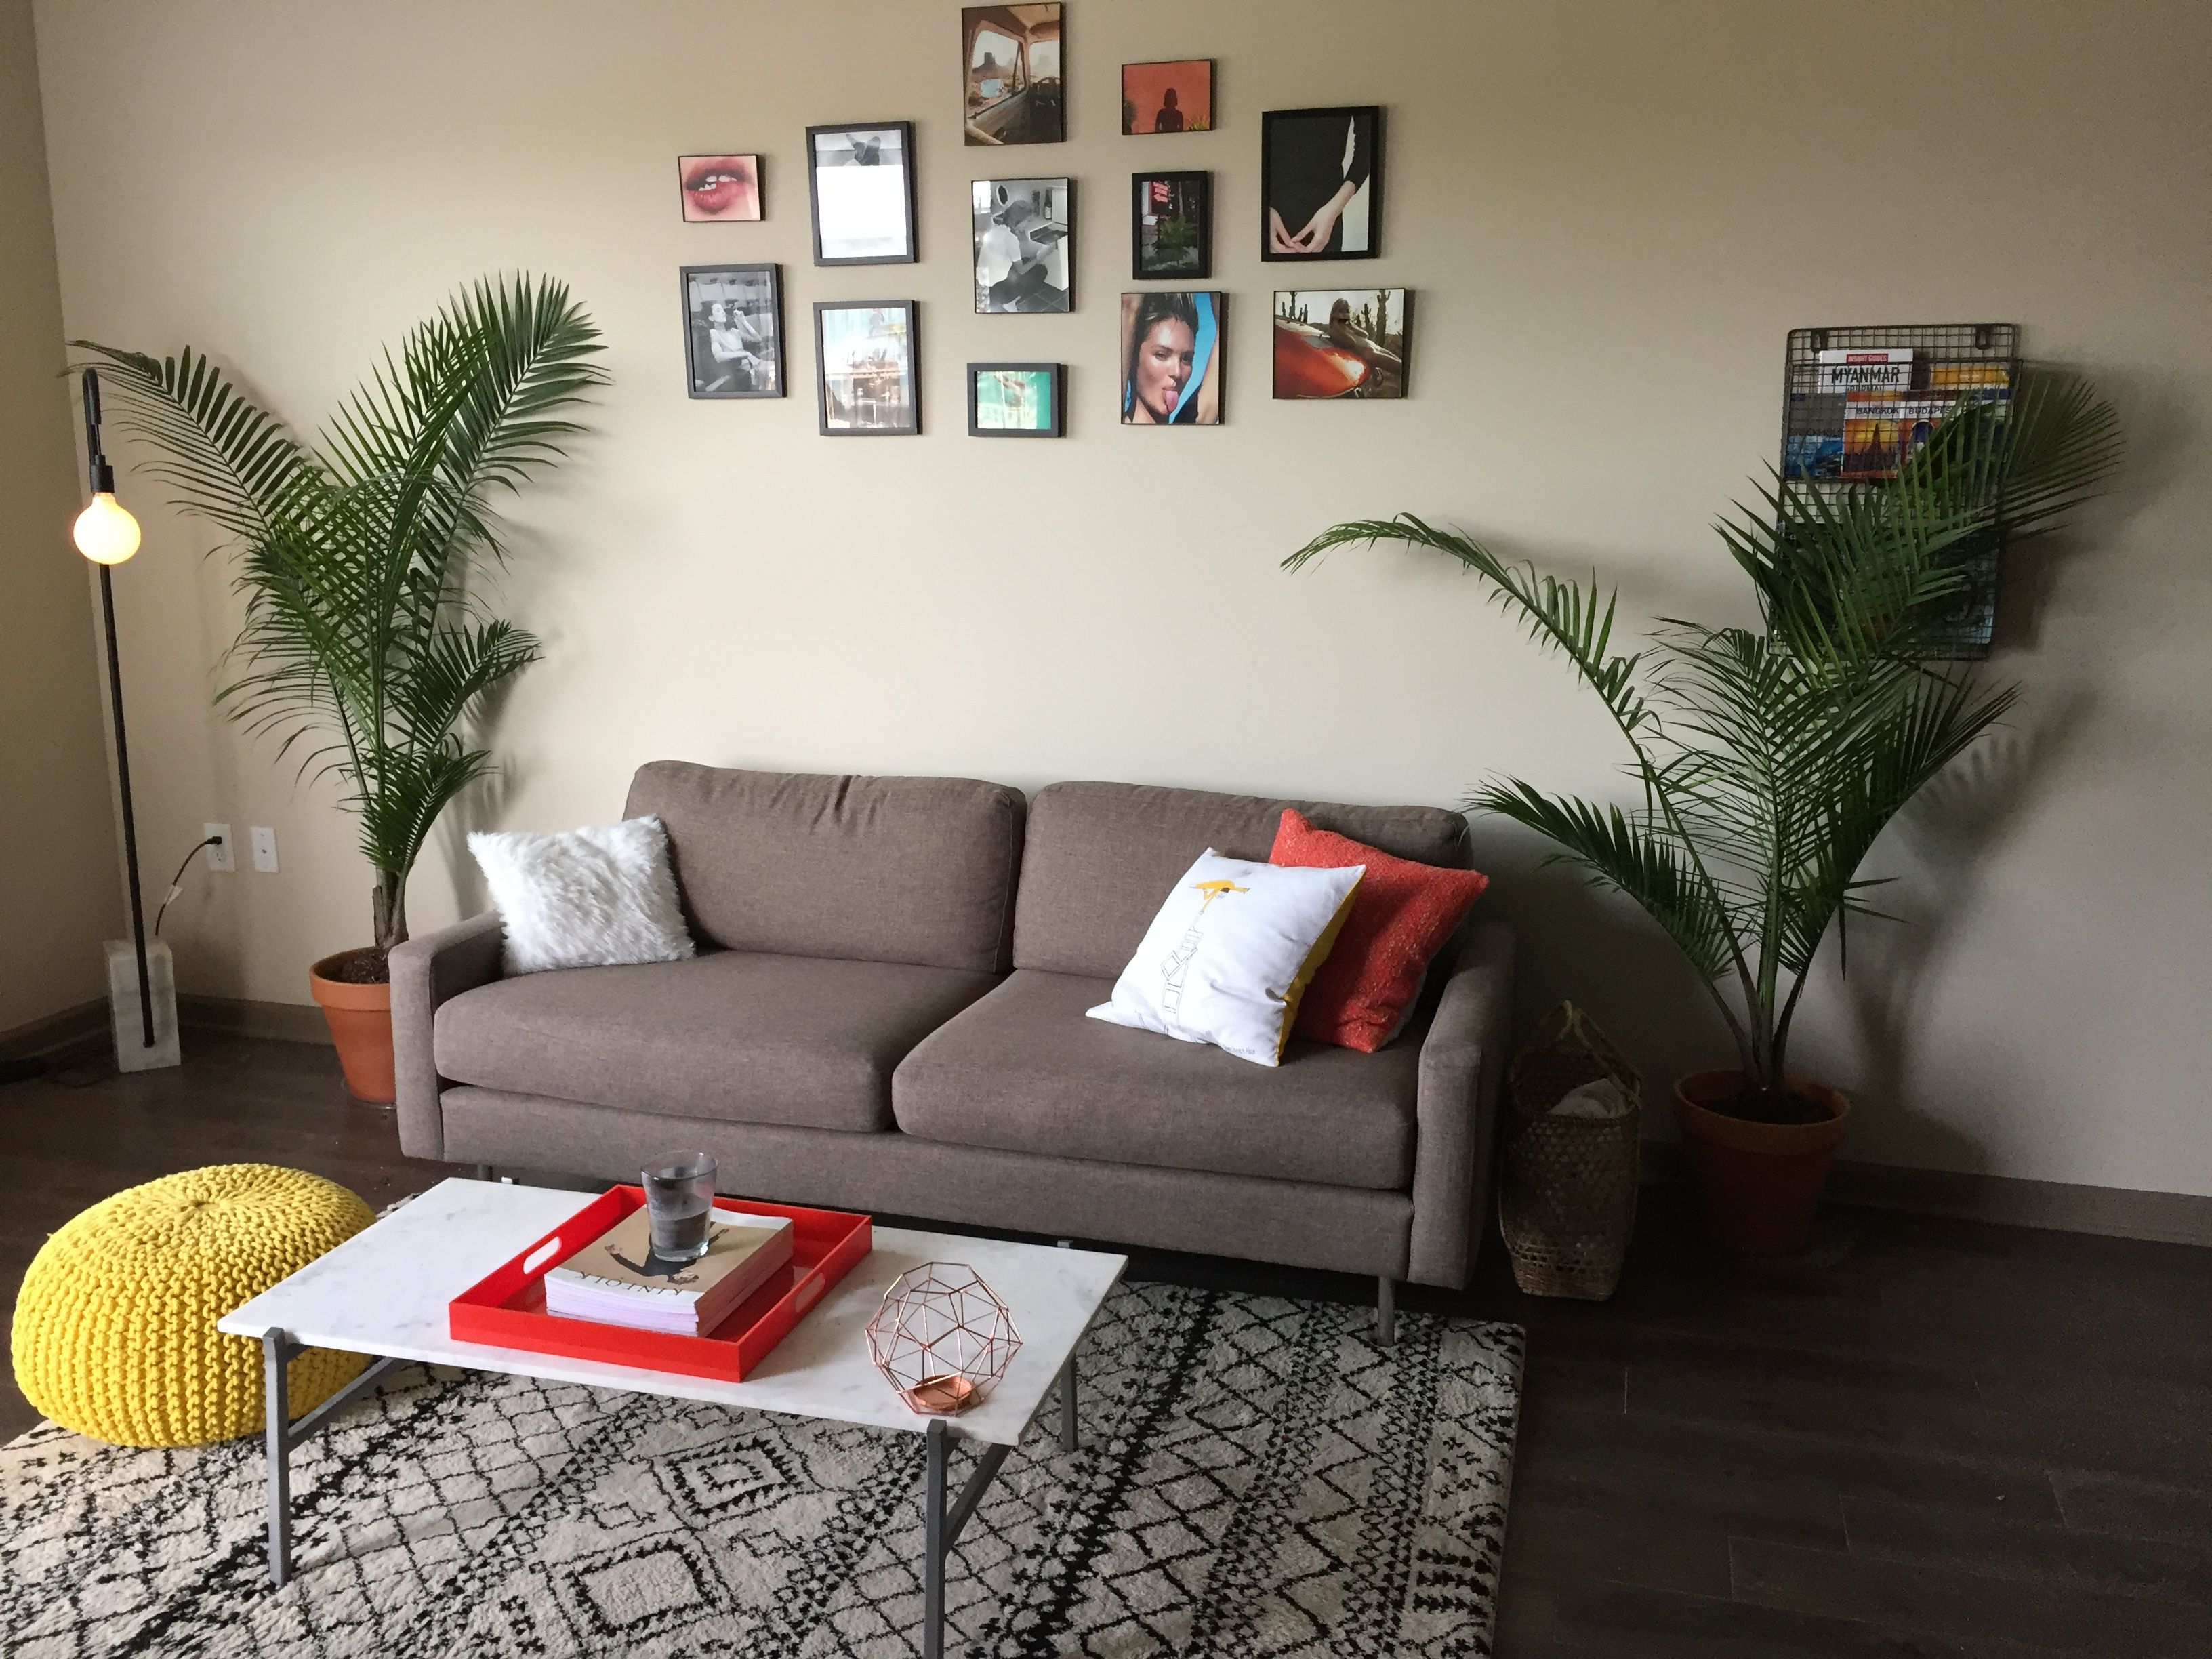 Cb2 Minimalist Colorful Tropical Plants Indoor Living Room Ideas Apartment Design And Decor Small